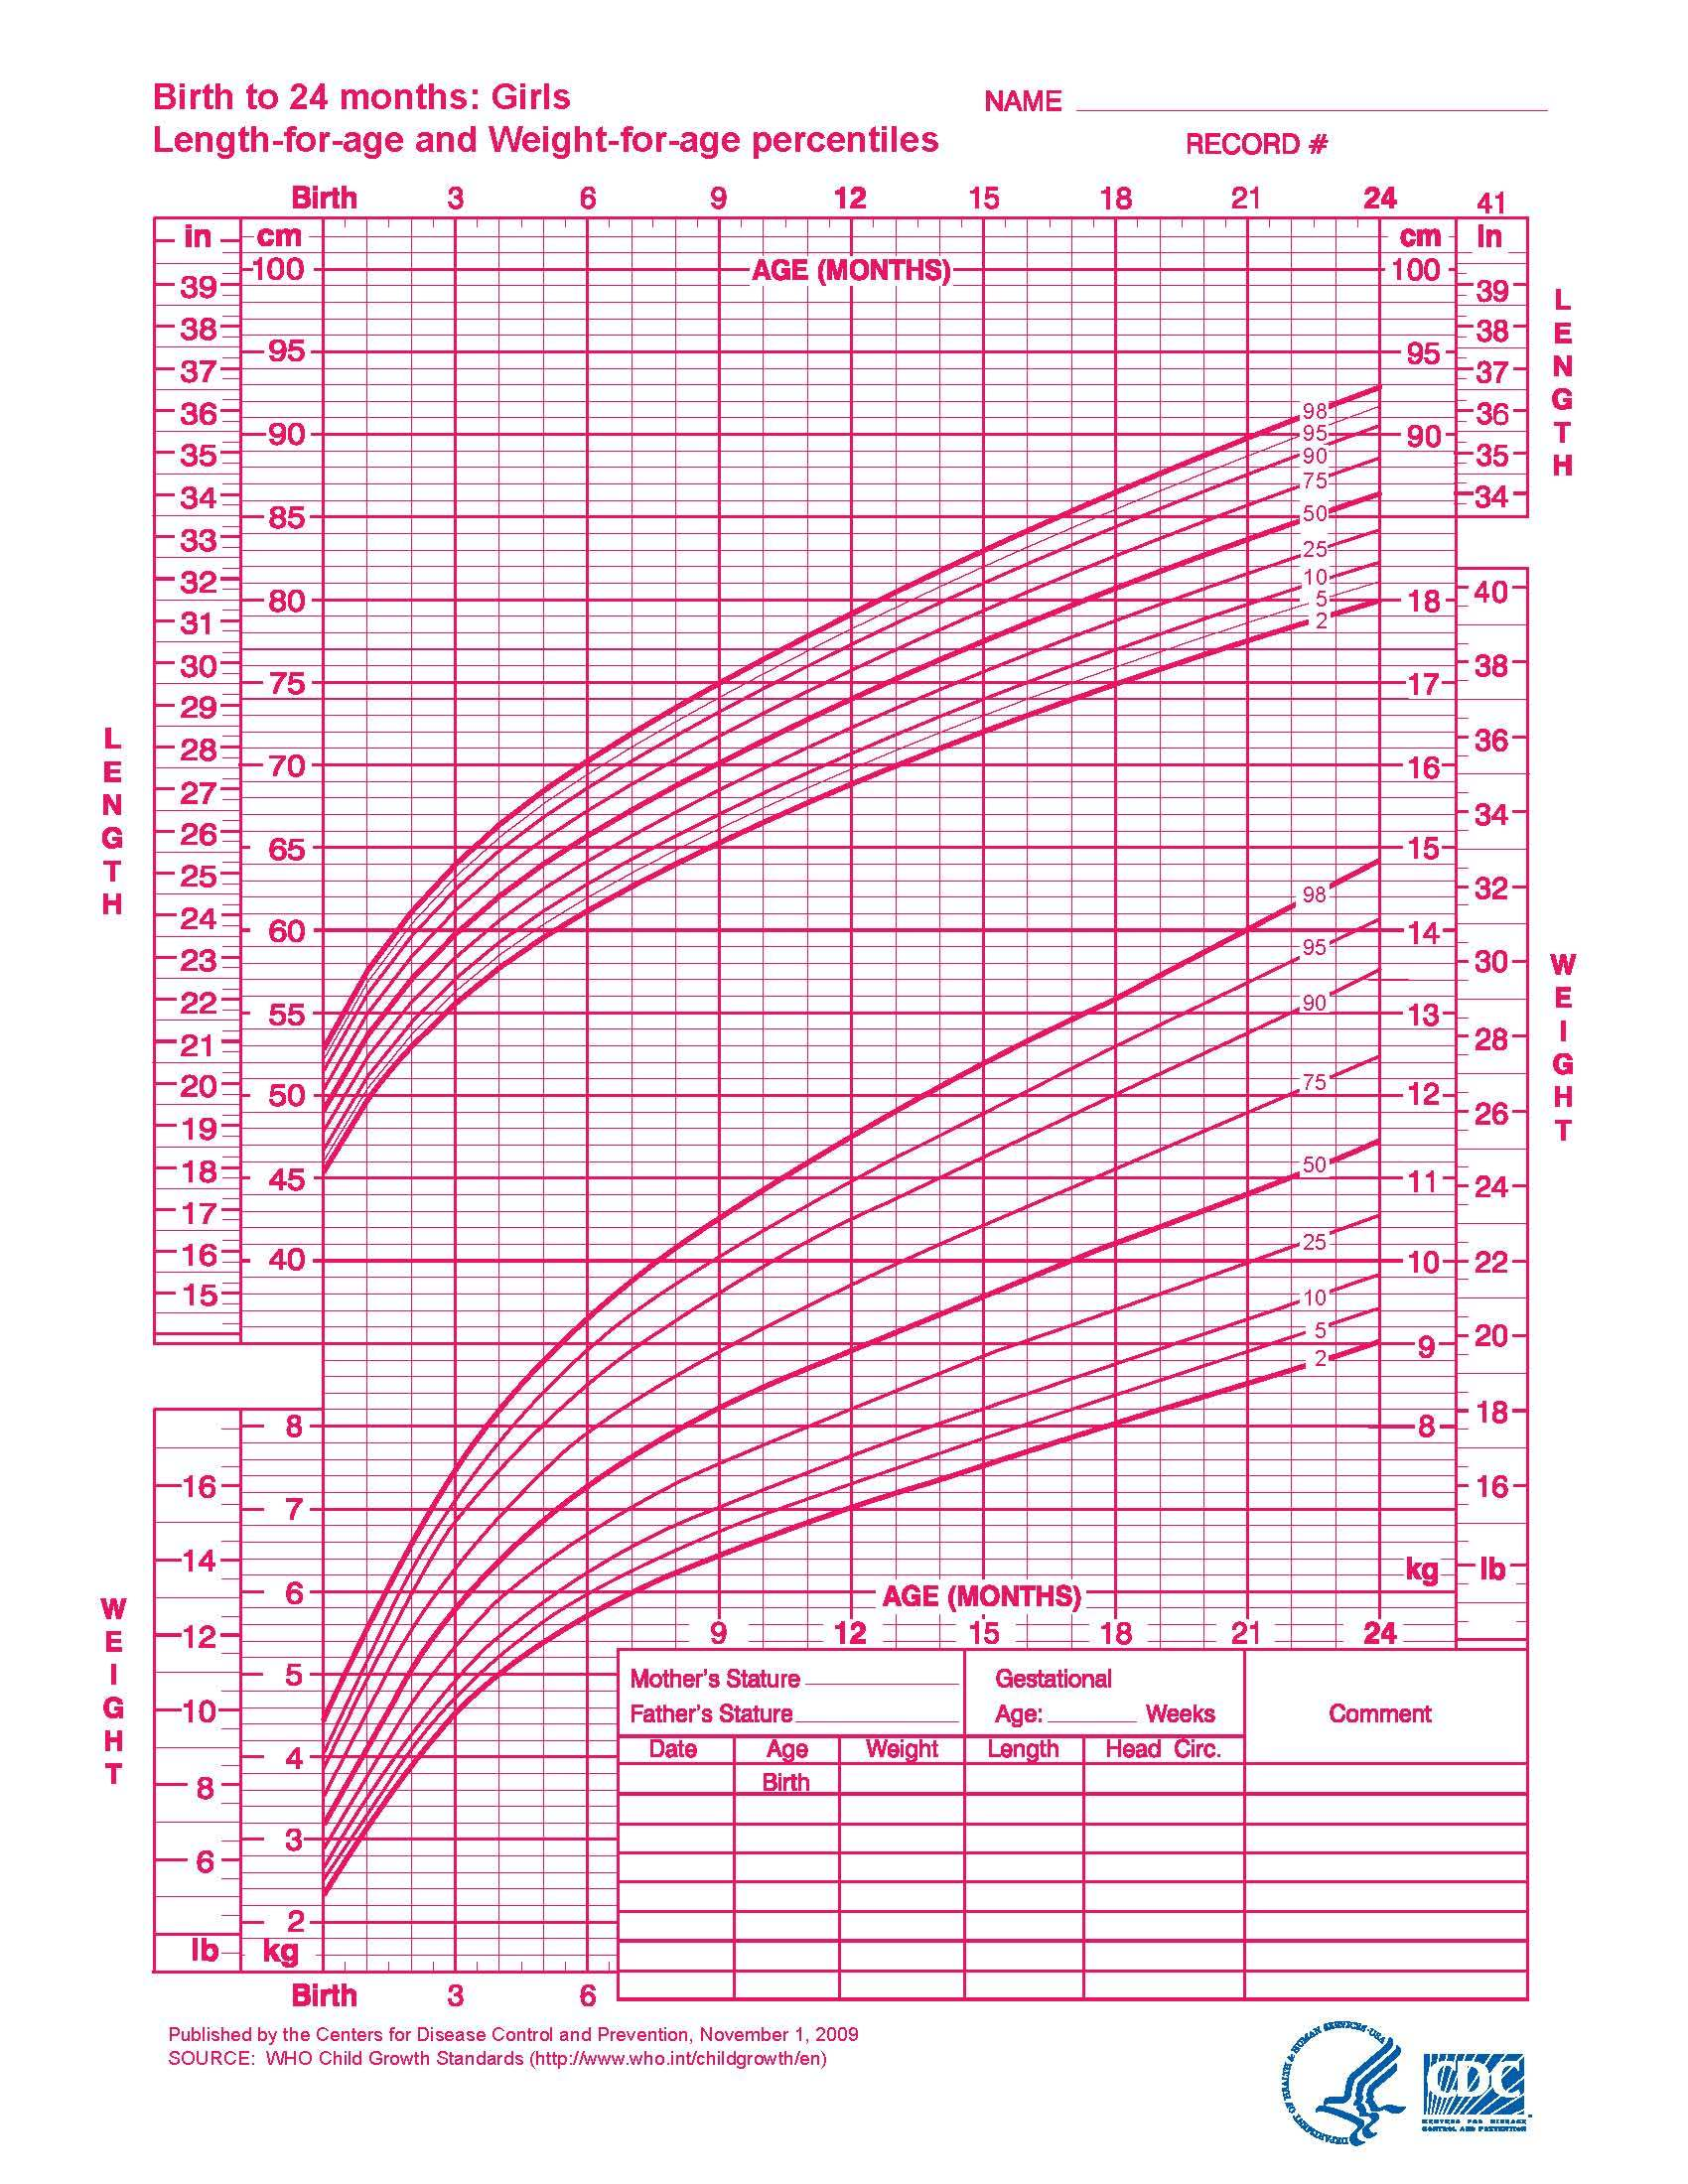 WHO Growth Chart-Girls